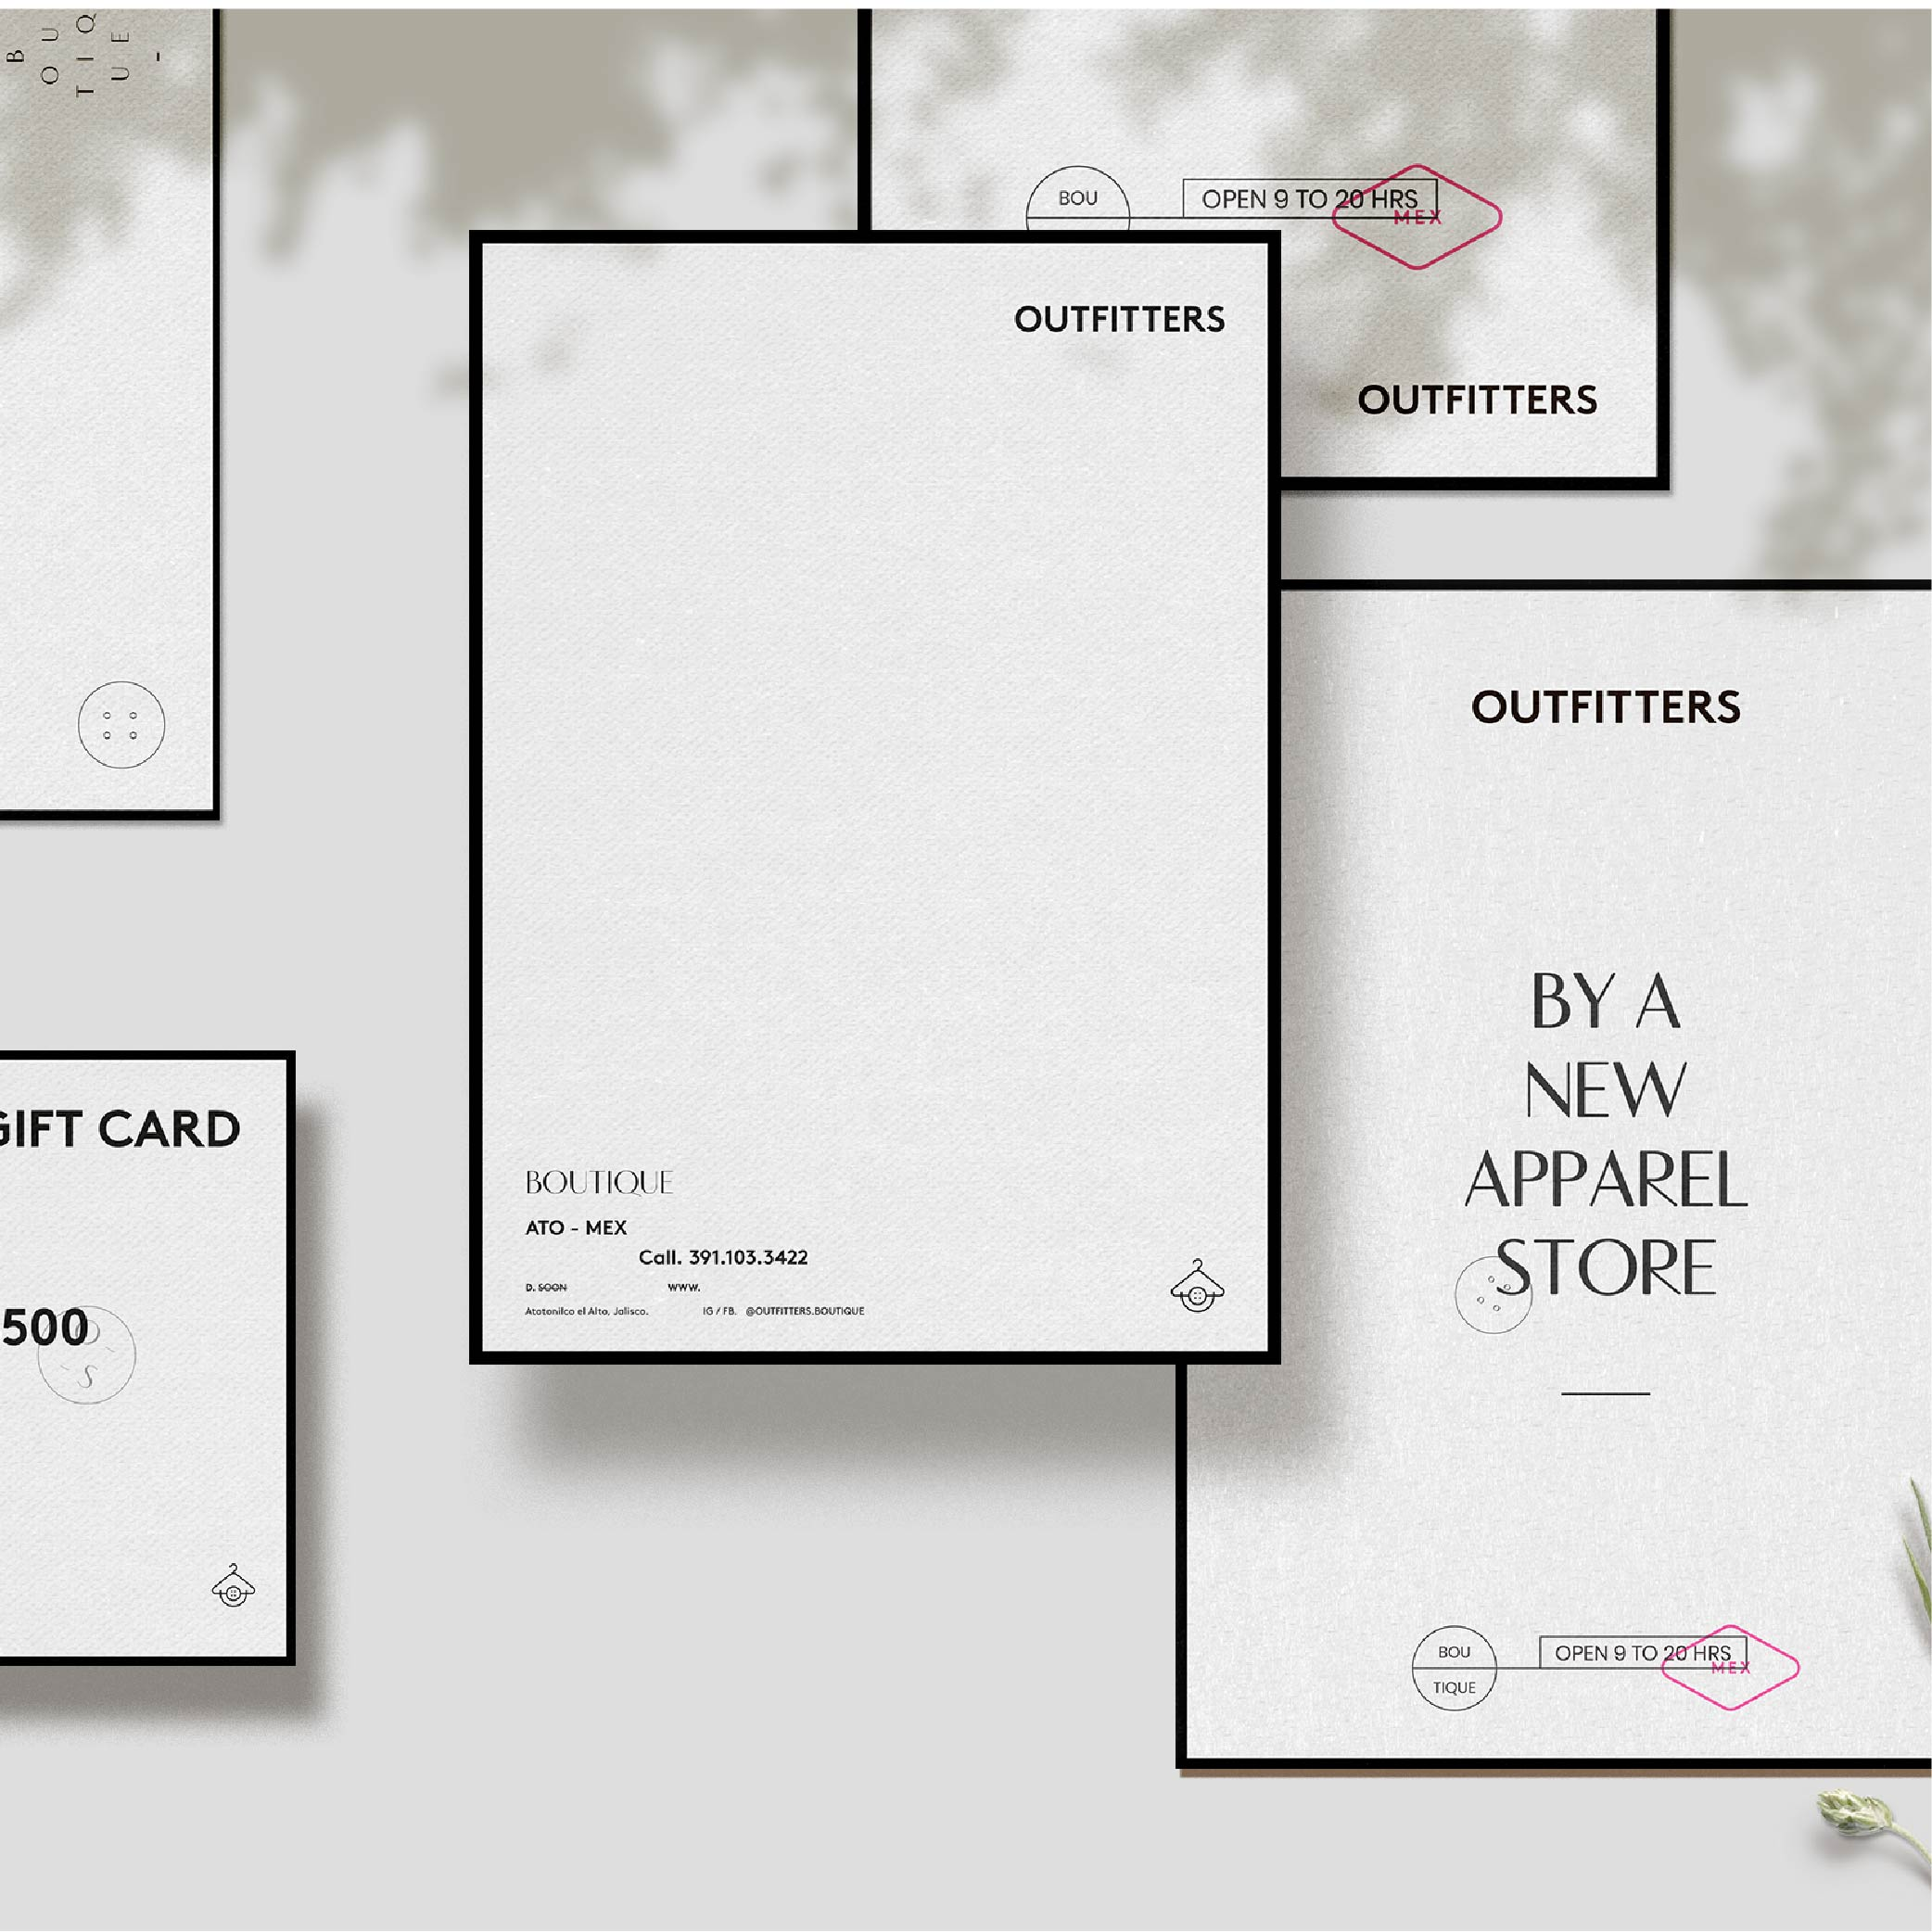 Outfitters by Servin Studio